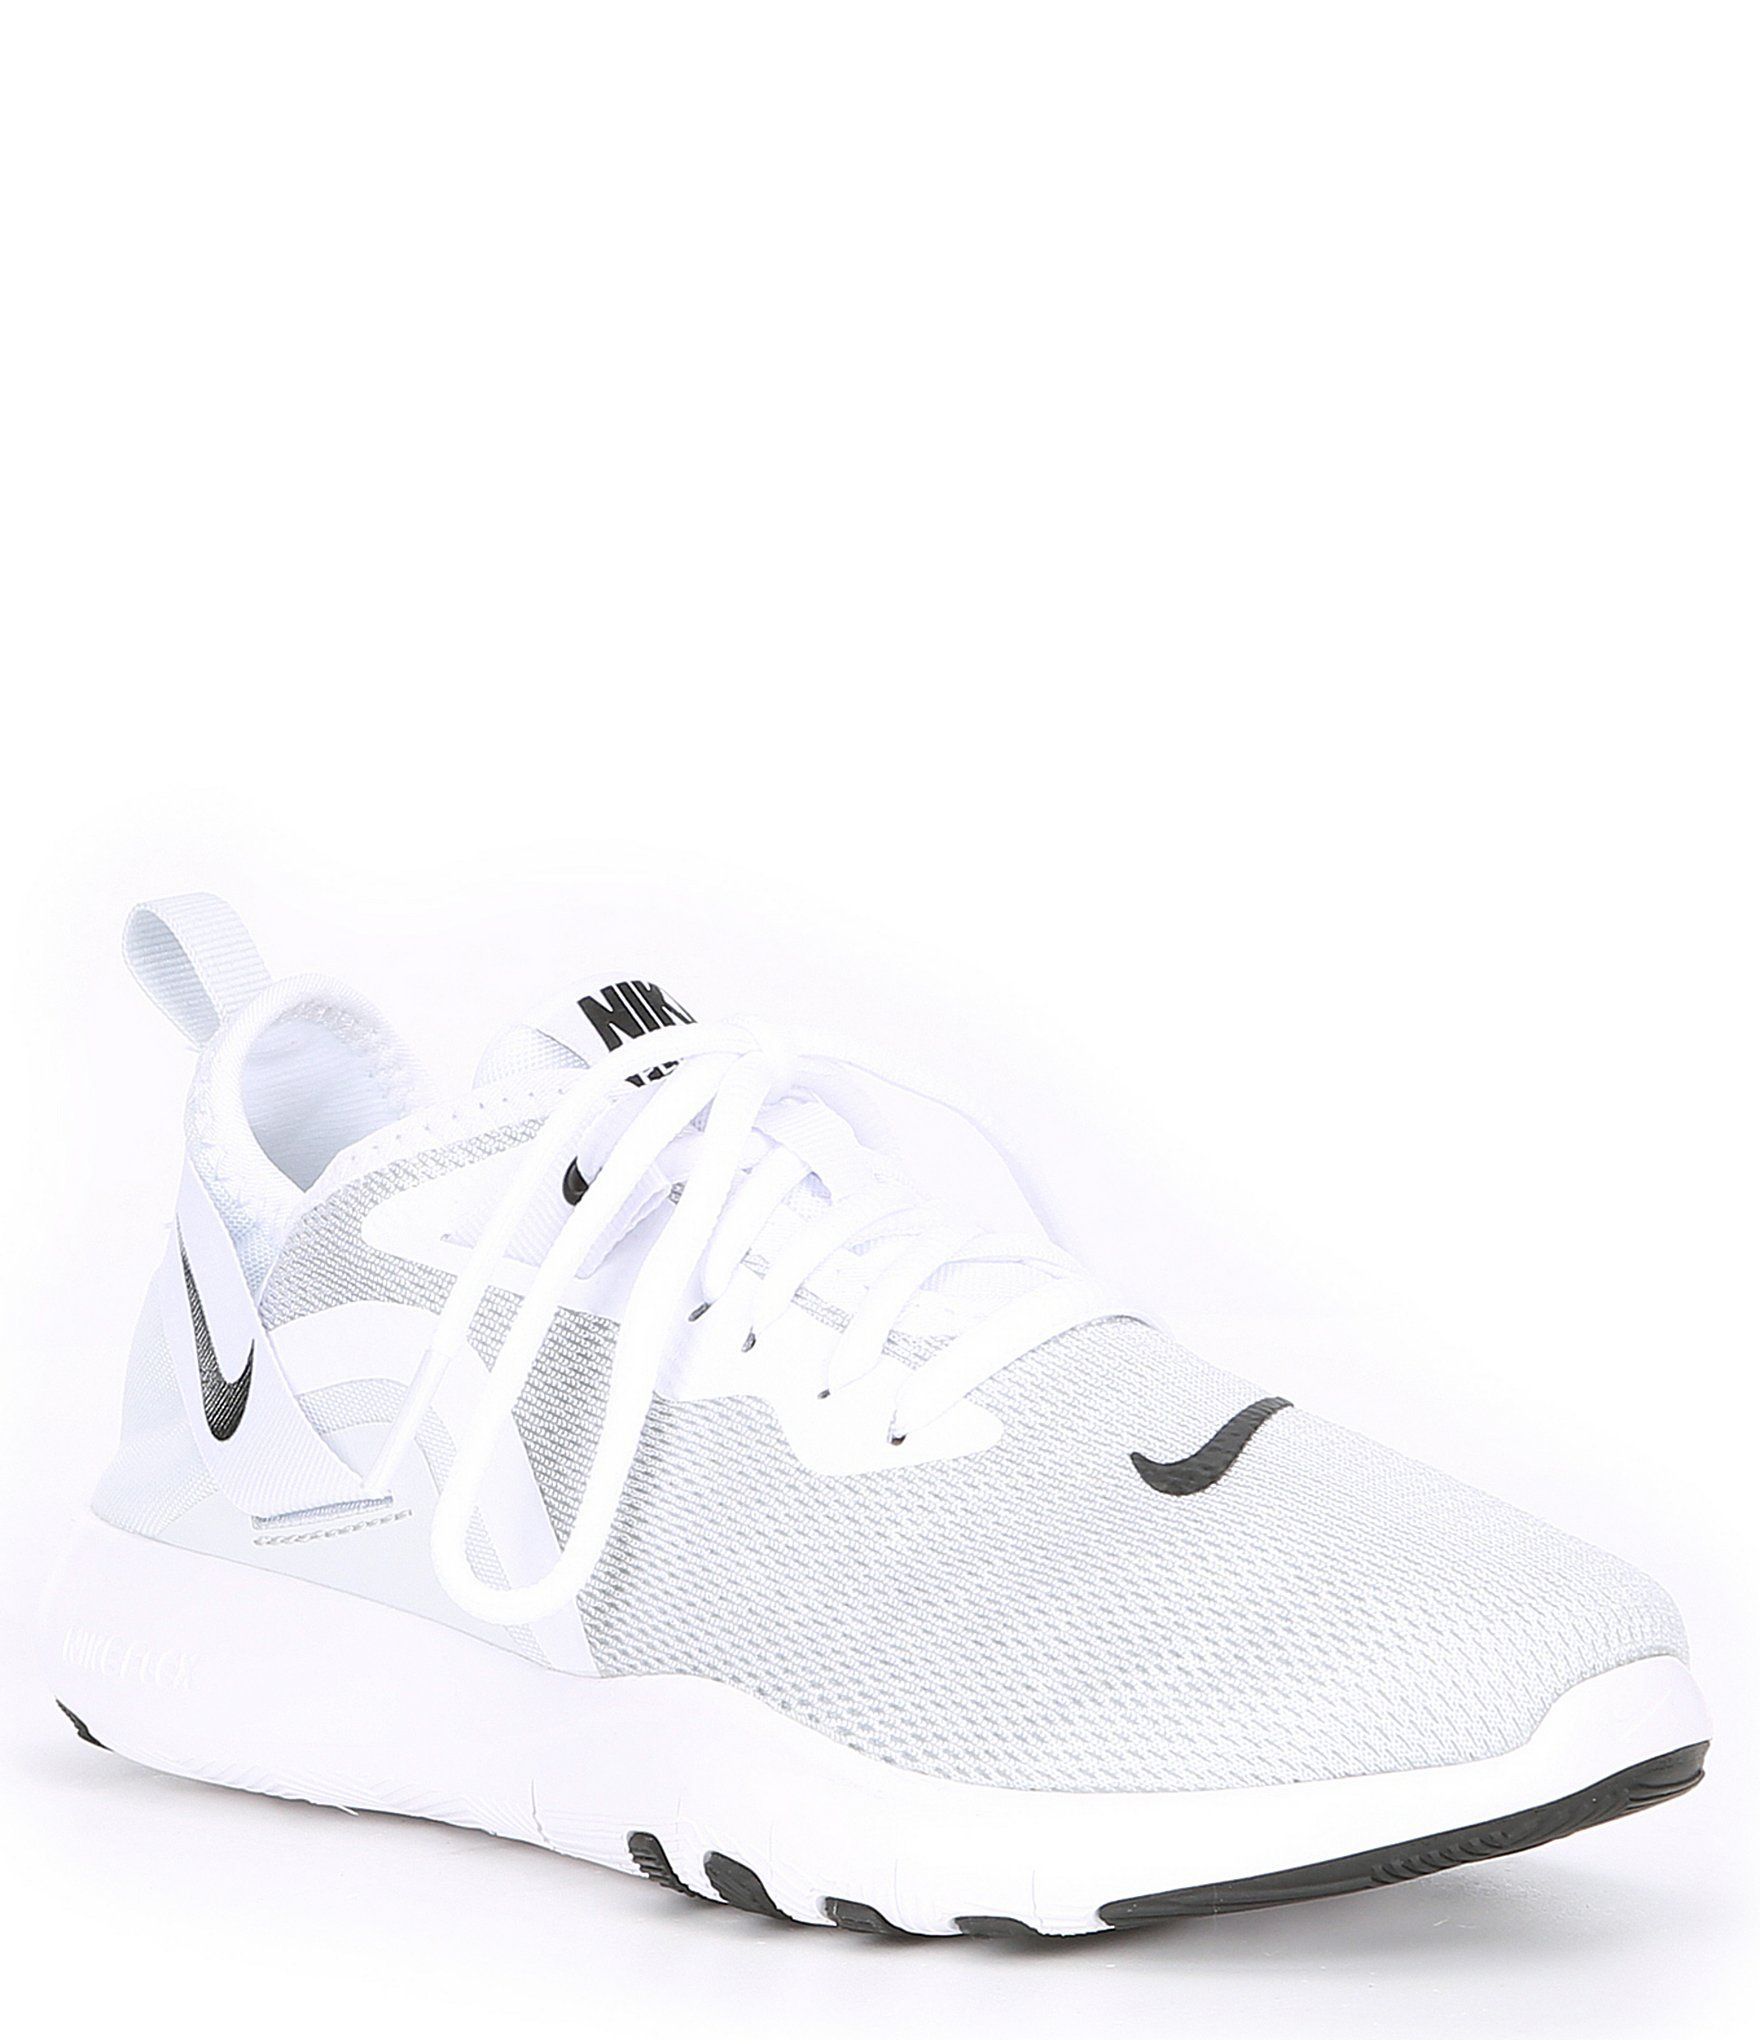 Pin By Ariana Lebron On Sneak In 2020 Cute Running Shoes White Nike Shoes Training Shoes